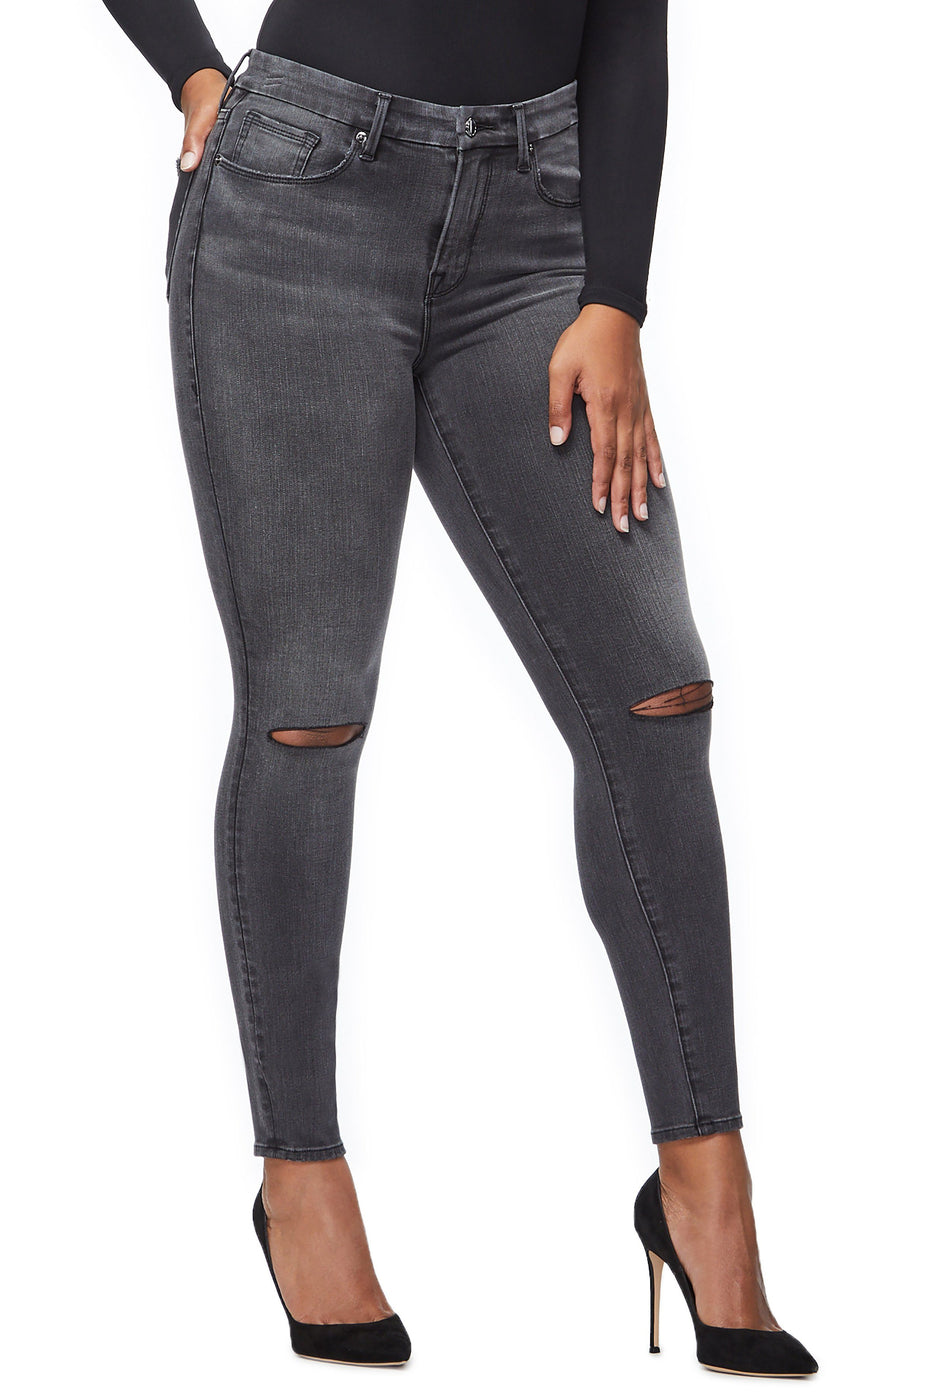 Good American Ripped Black039 Jeans